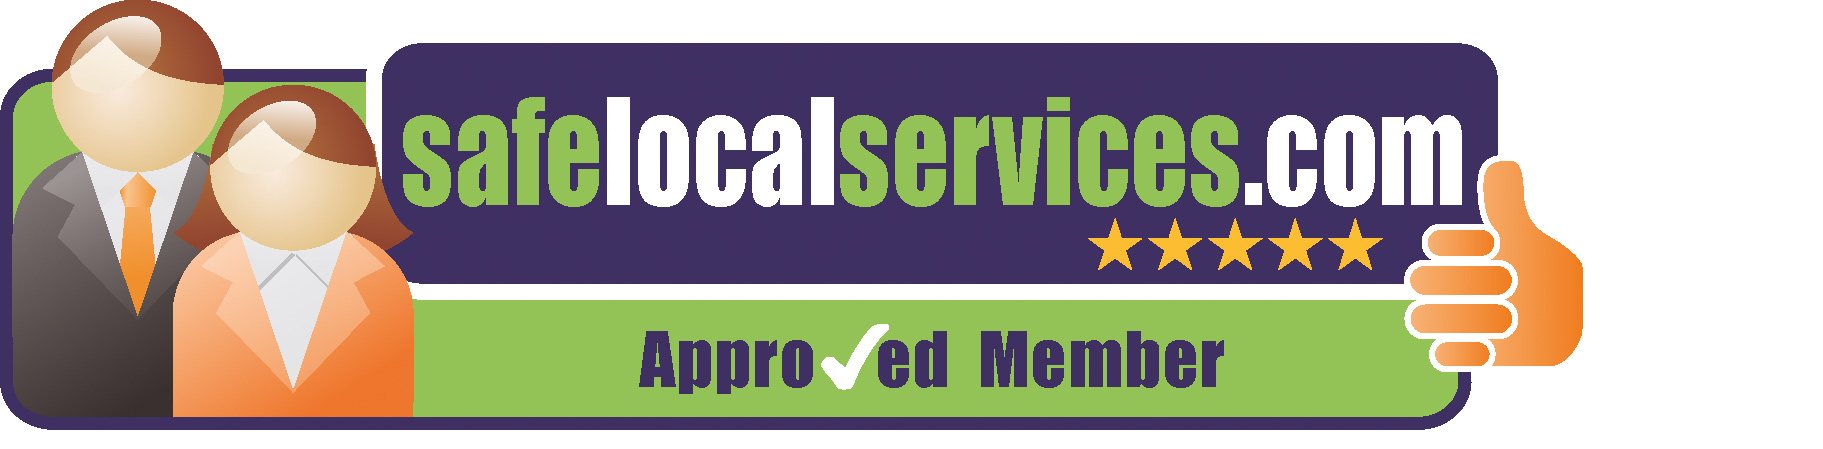 Safe Local Services Approved Member